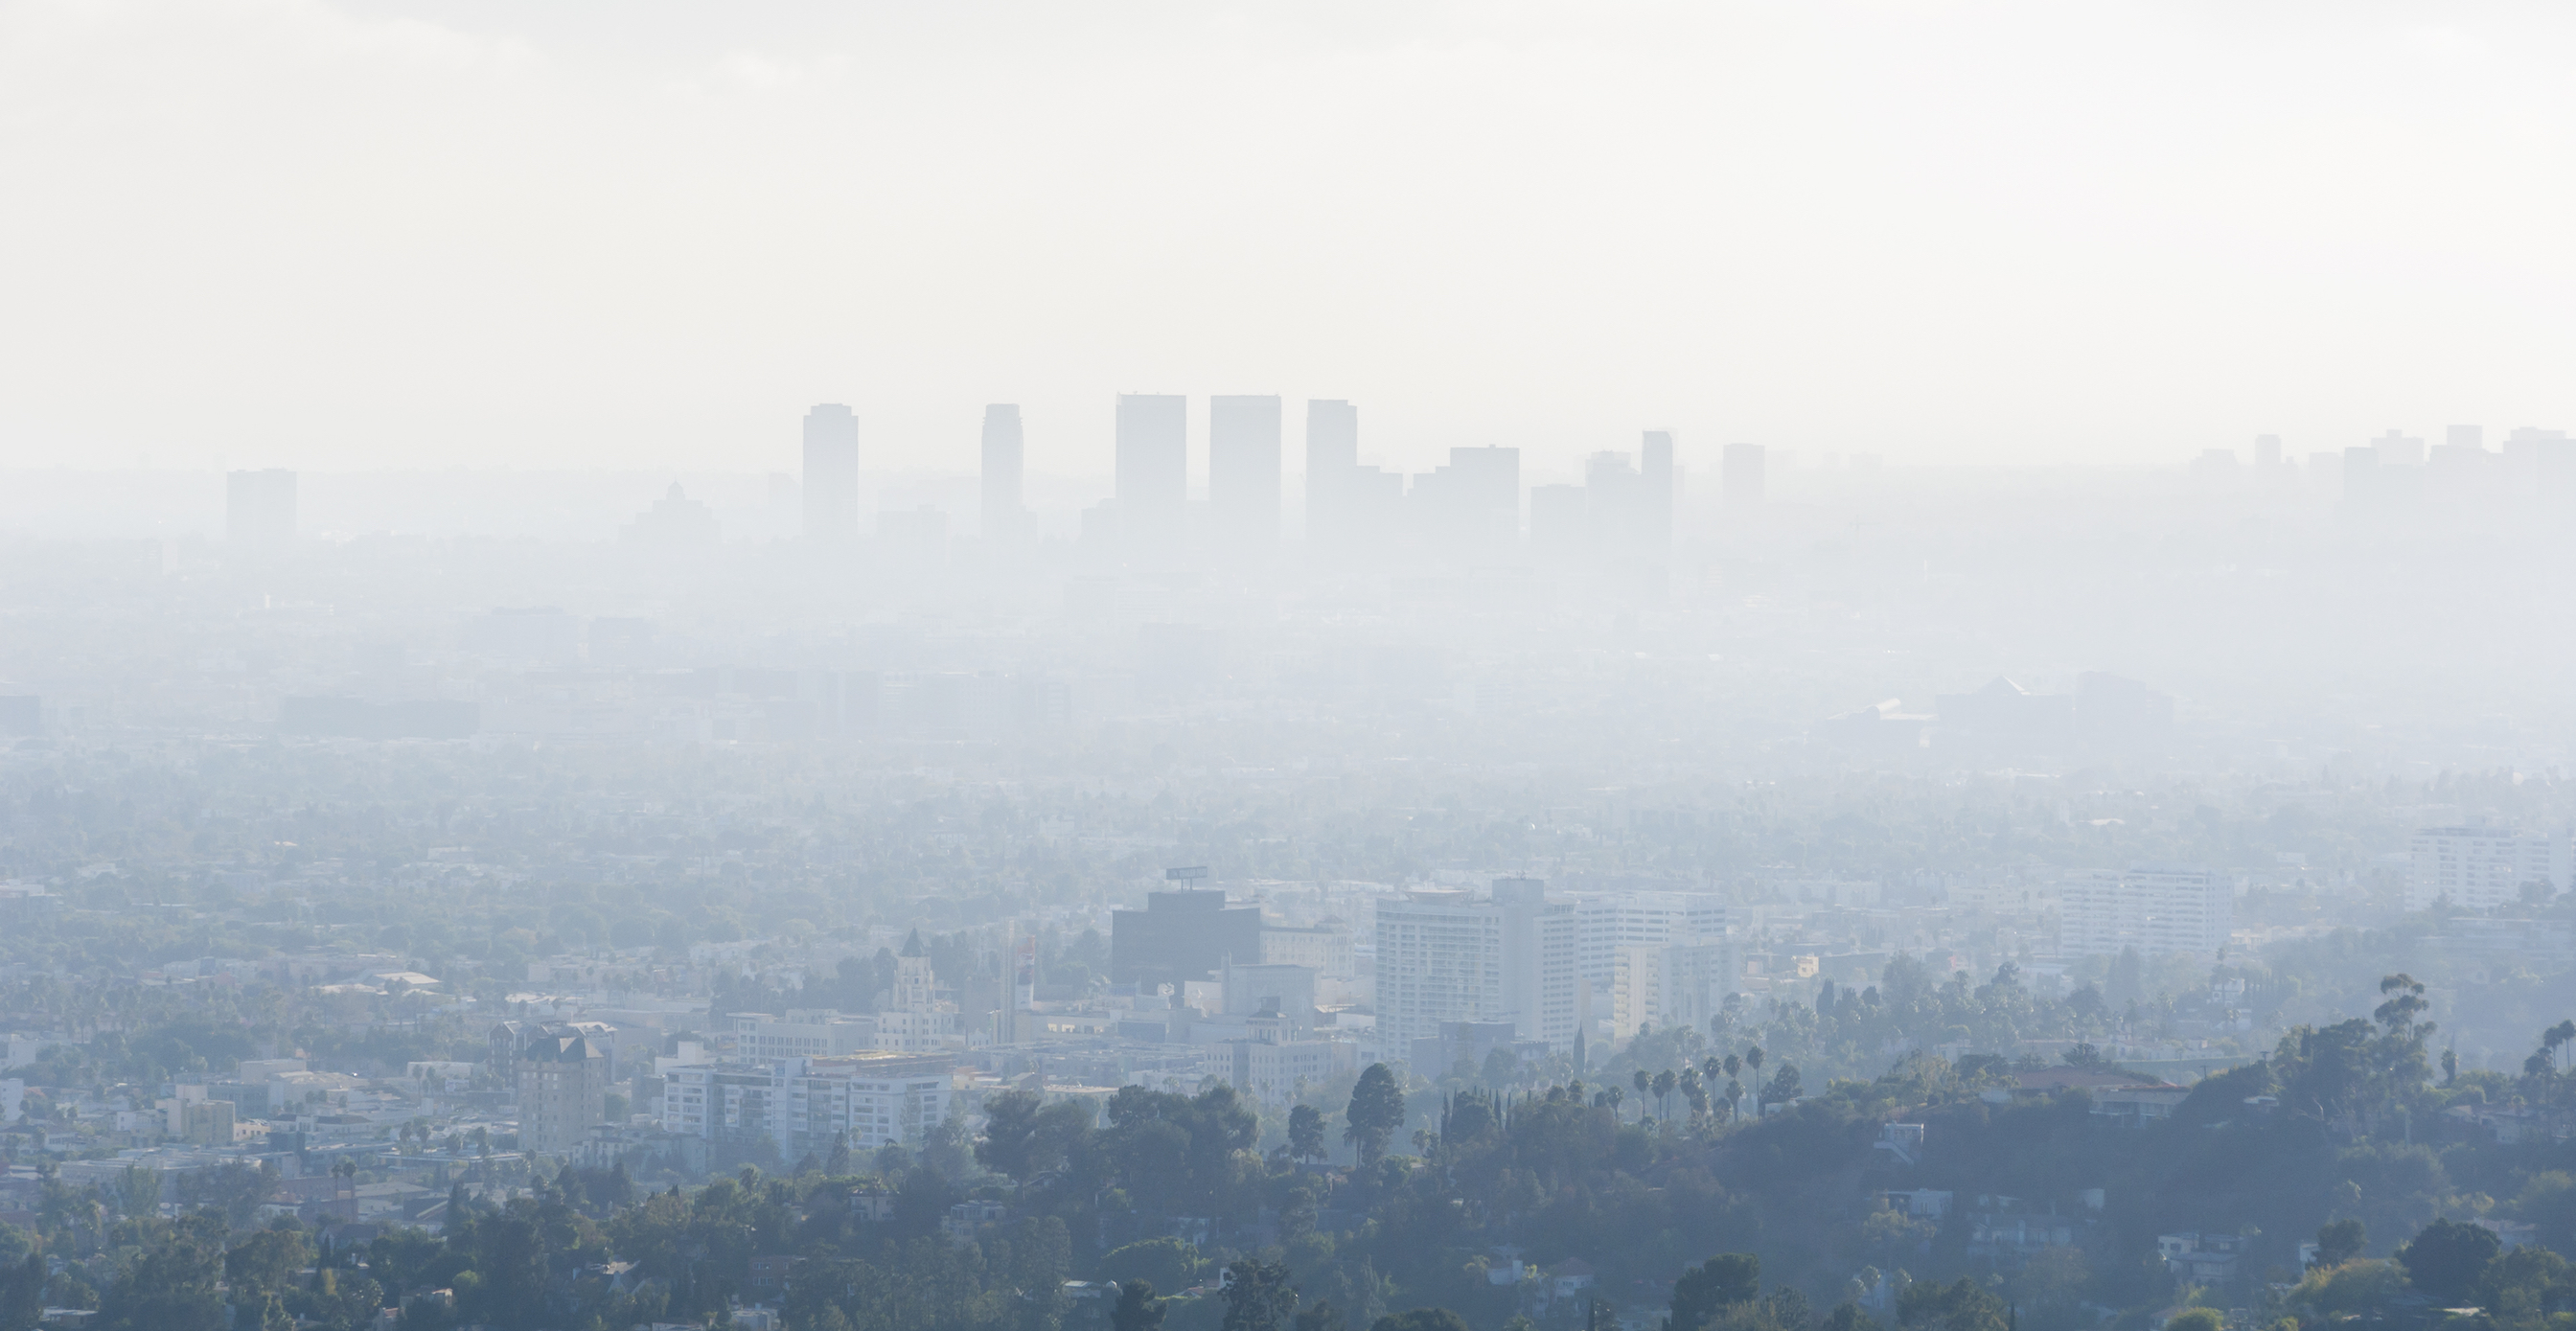 Chemical products such as pesticides, paints, perfumes, and household cleaners are some of the biggest sources of urban air pollution.